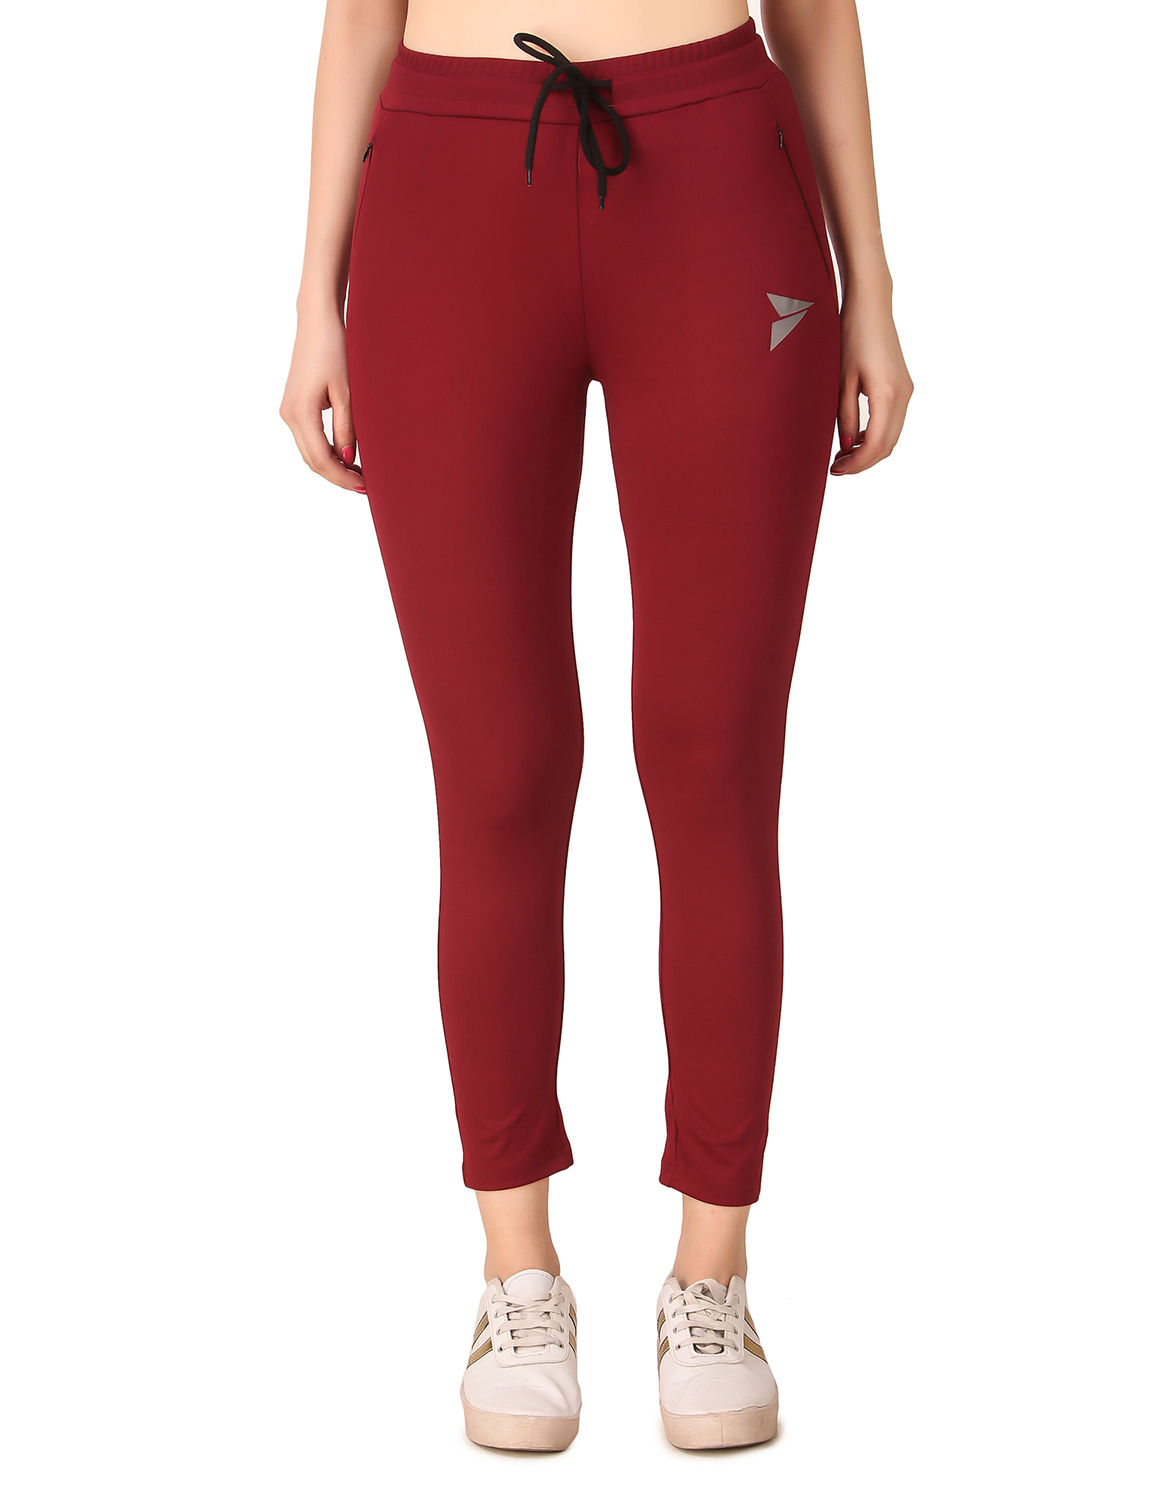 Fitinc | Fitinc Women Maroon Trackpant with Concealed Zipper Pockets and Drawstring